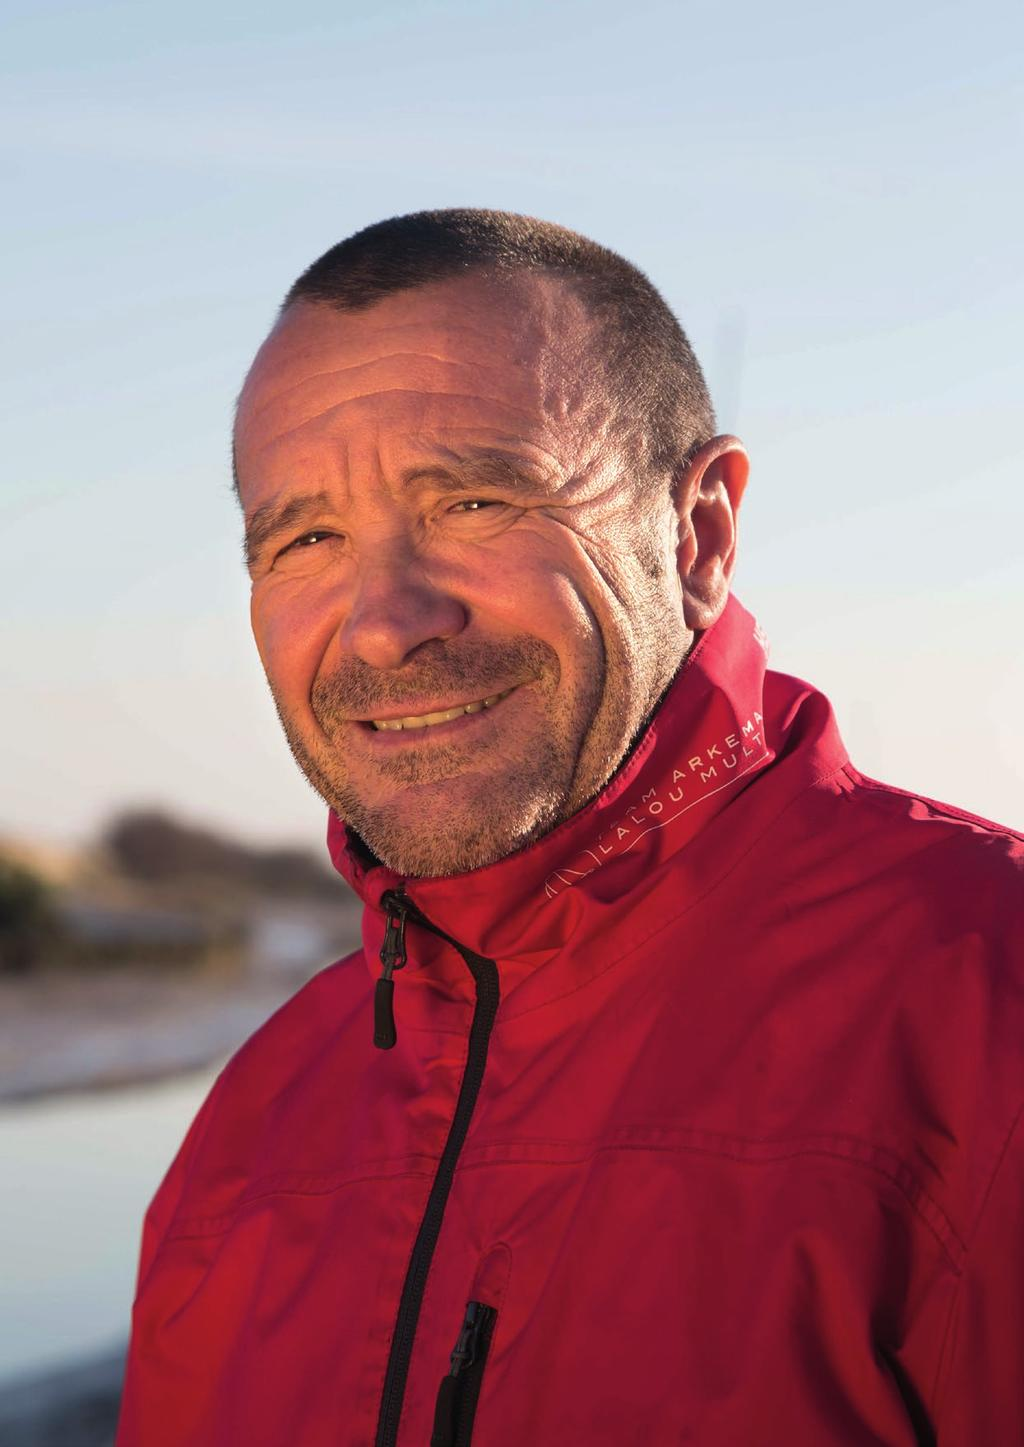 LALOU ROUCAYROL, A DETERMINED AND PIONEERING SKIPPER Nationality: French Age: 53 years old (born in Nantes on 9 July 1964) Lives in Verdon sur Mer, Married 2017 3 rd in Record SNSM 3 rd in Armen Race